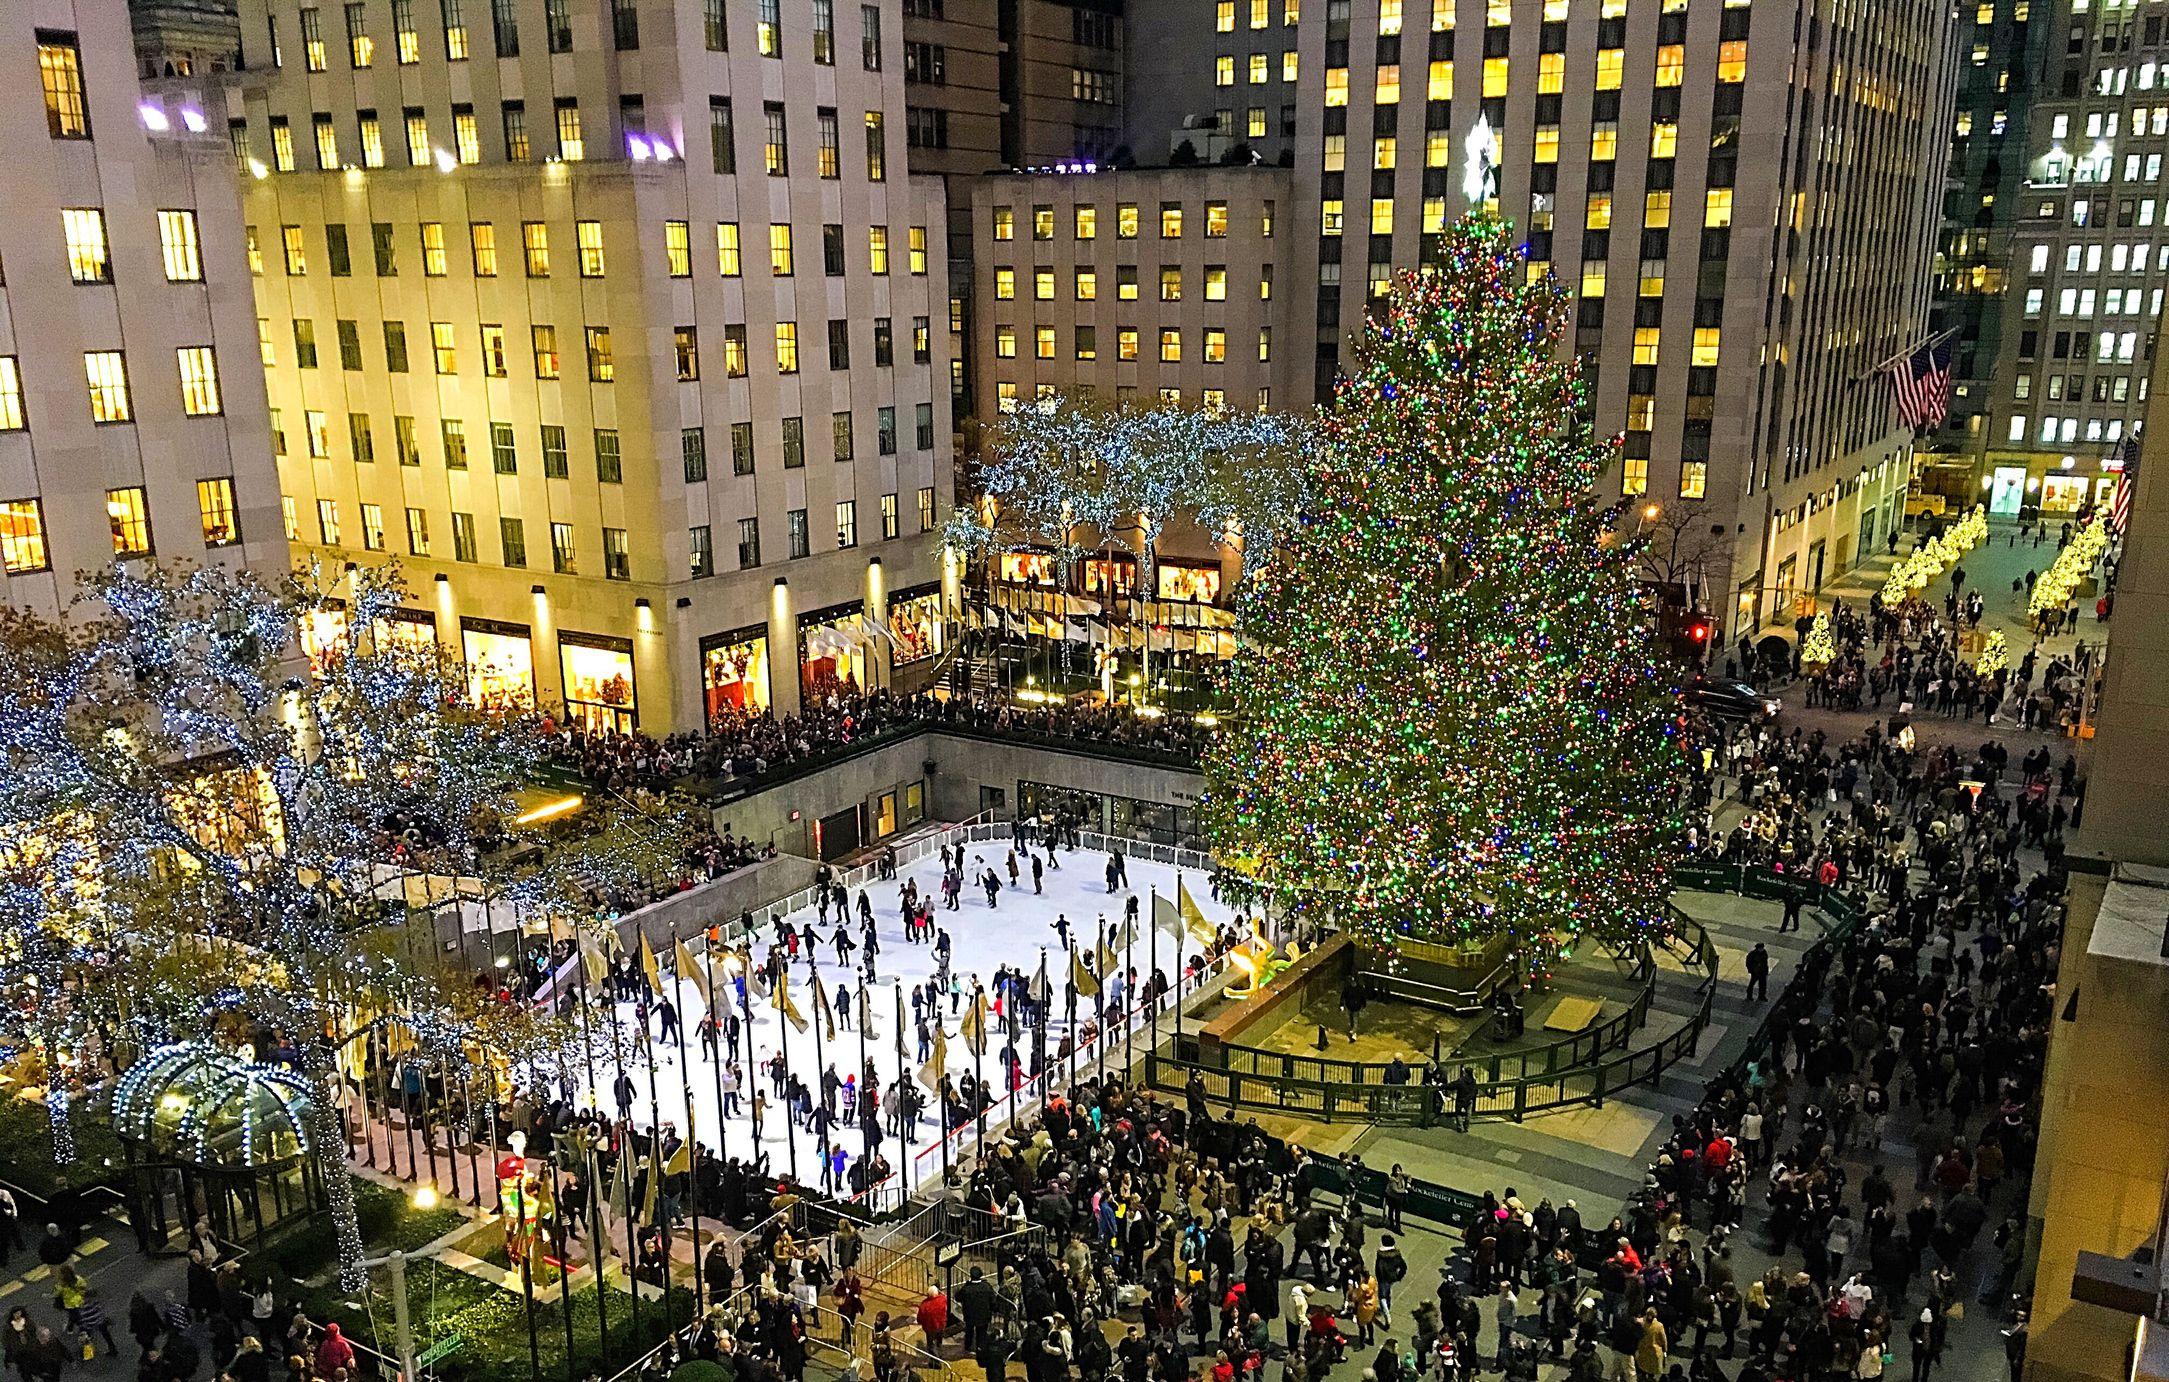 Things To Do On Christmas Day.13 Best Things To Do On Christmas Day In Nyc Best Holiday